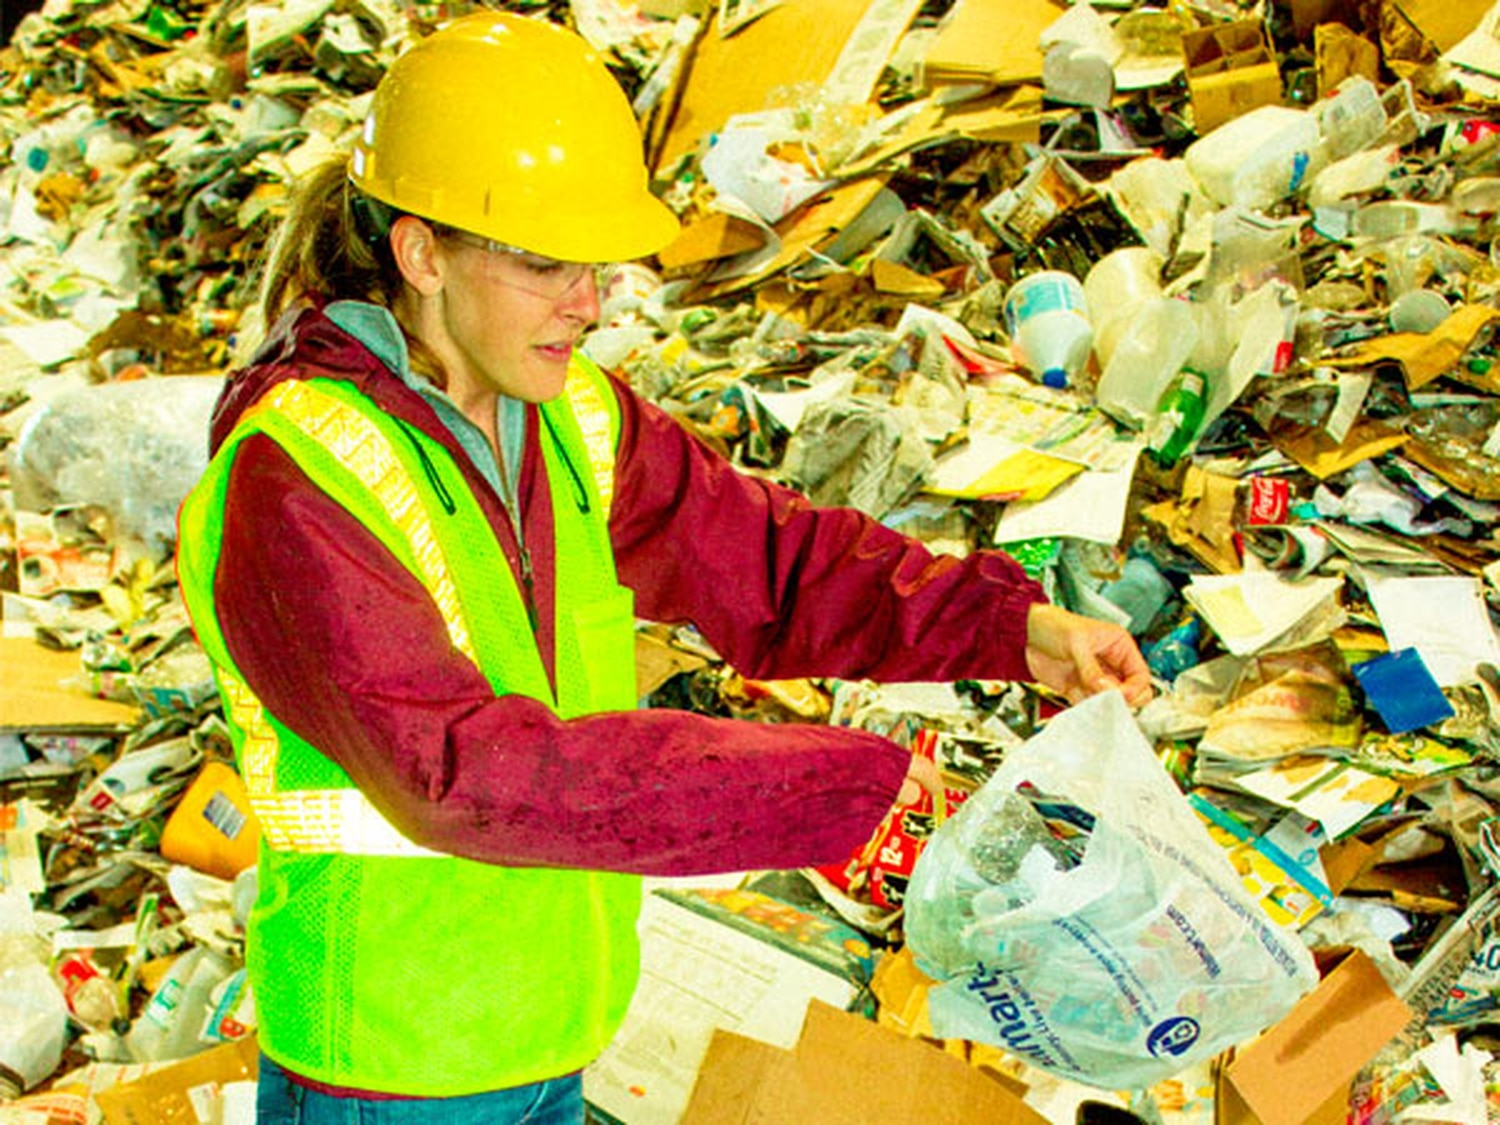 Lisa Merrill pulls a plastic bag from a pile of materials at the recycling center. The bags jam machines and stall sorting.